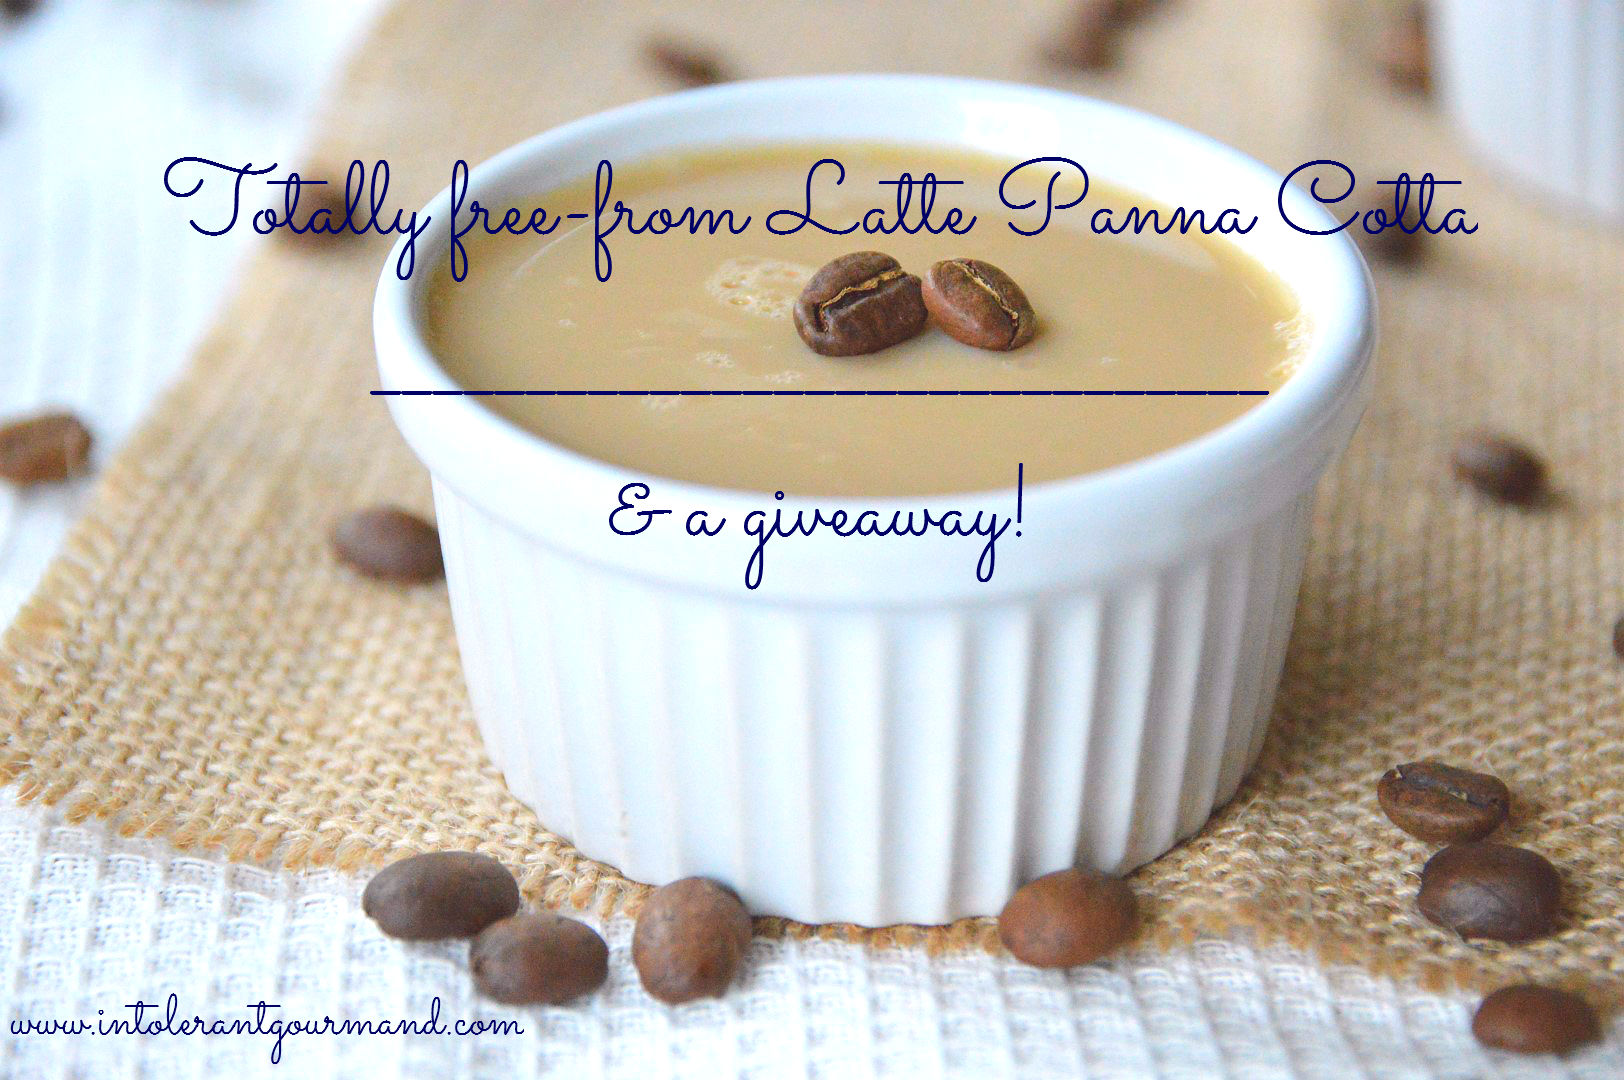 Totally free from Latte Panna Cotta